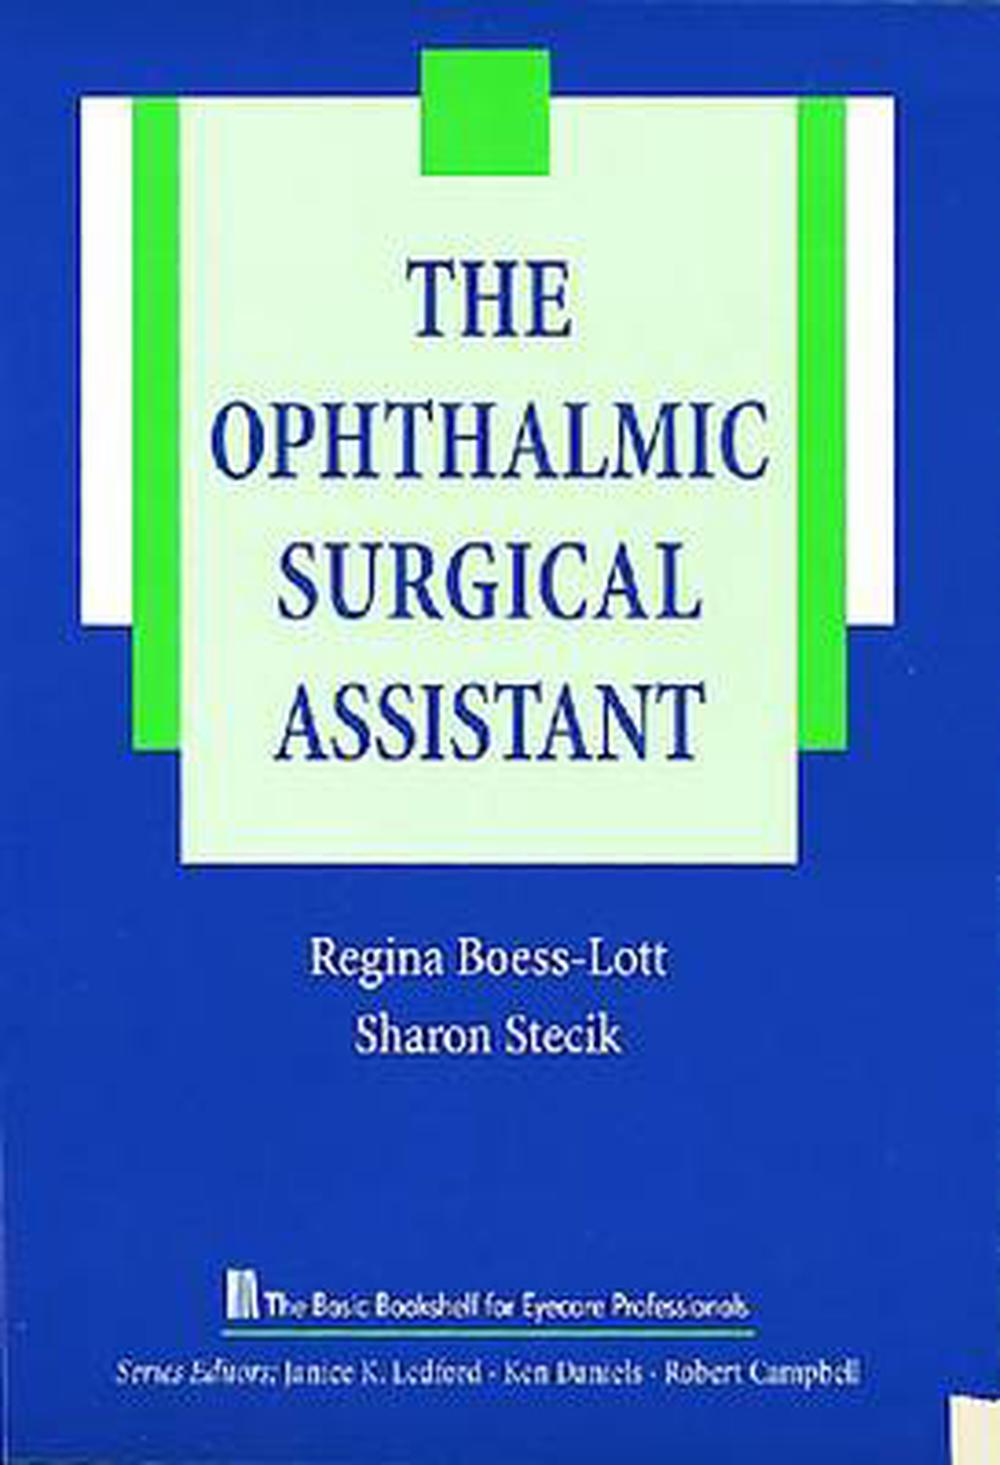 Details about The Ophthalmic Surgical Assistant by Sharon Stecik Paperback  Book Free Shipping!